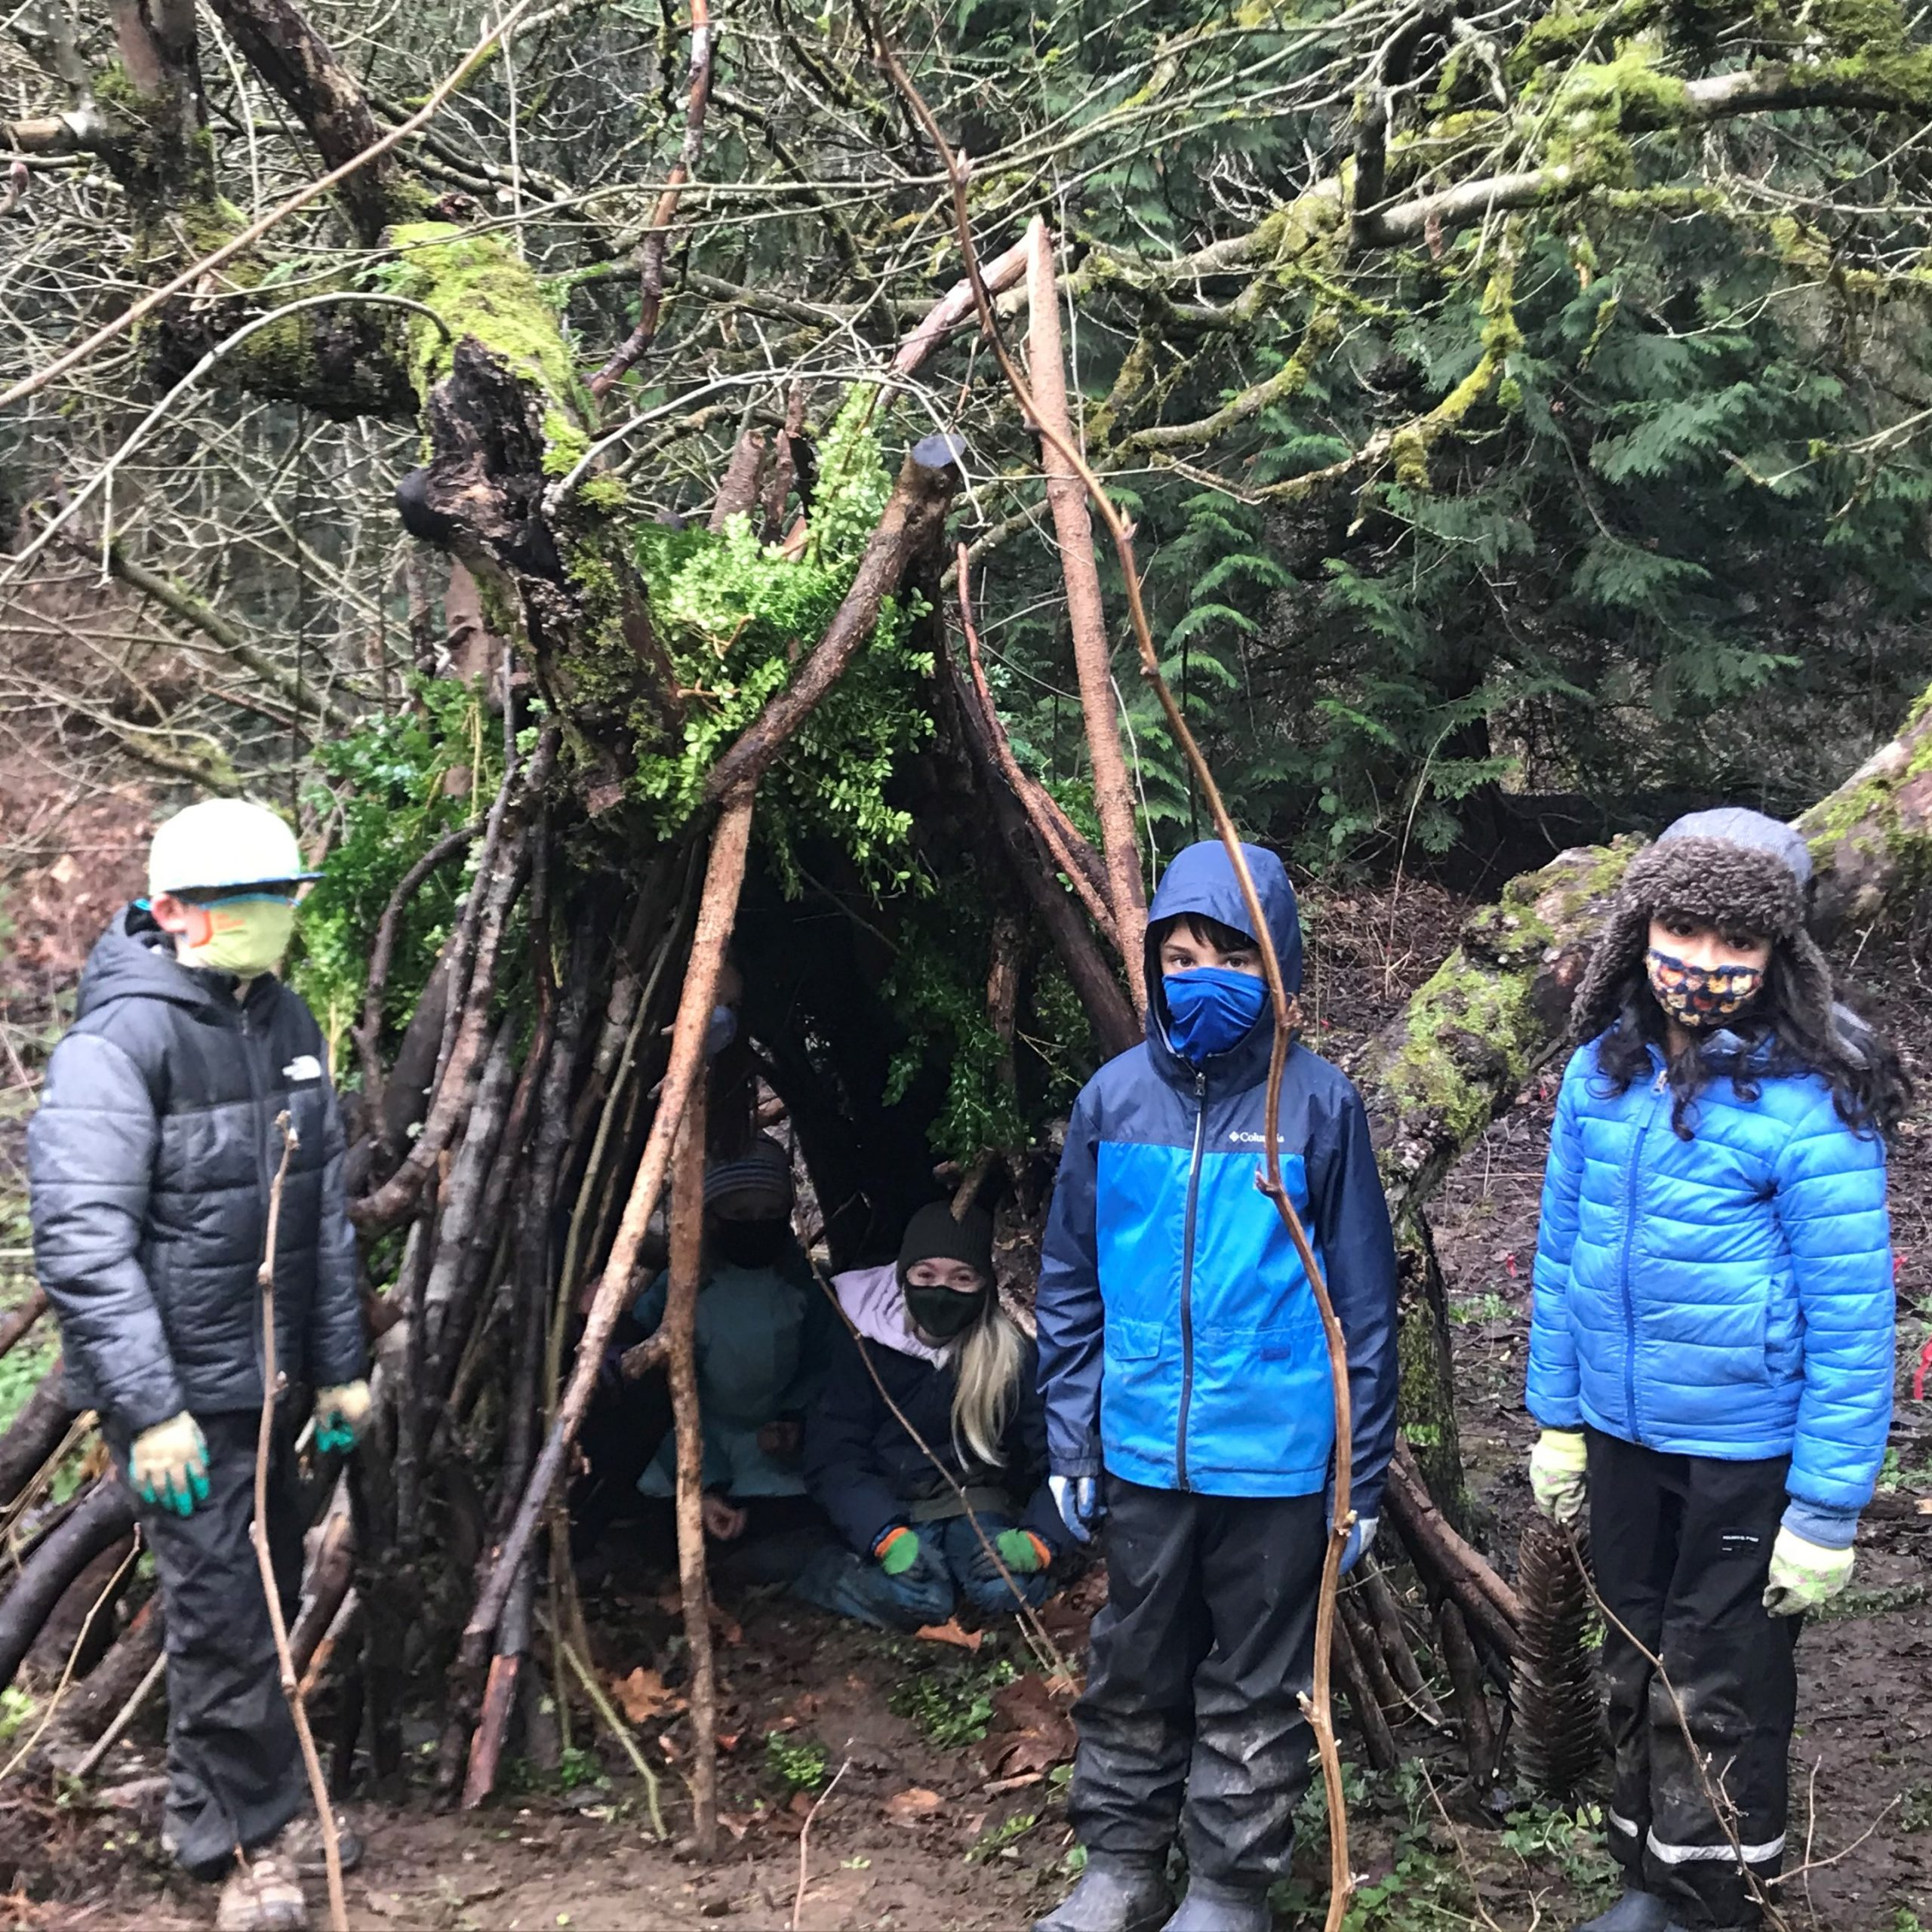 Students creating an outdoor shelter